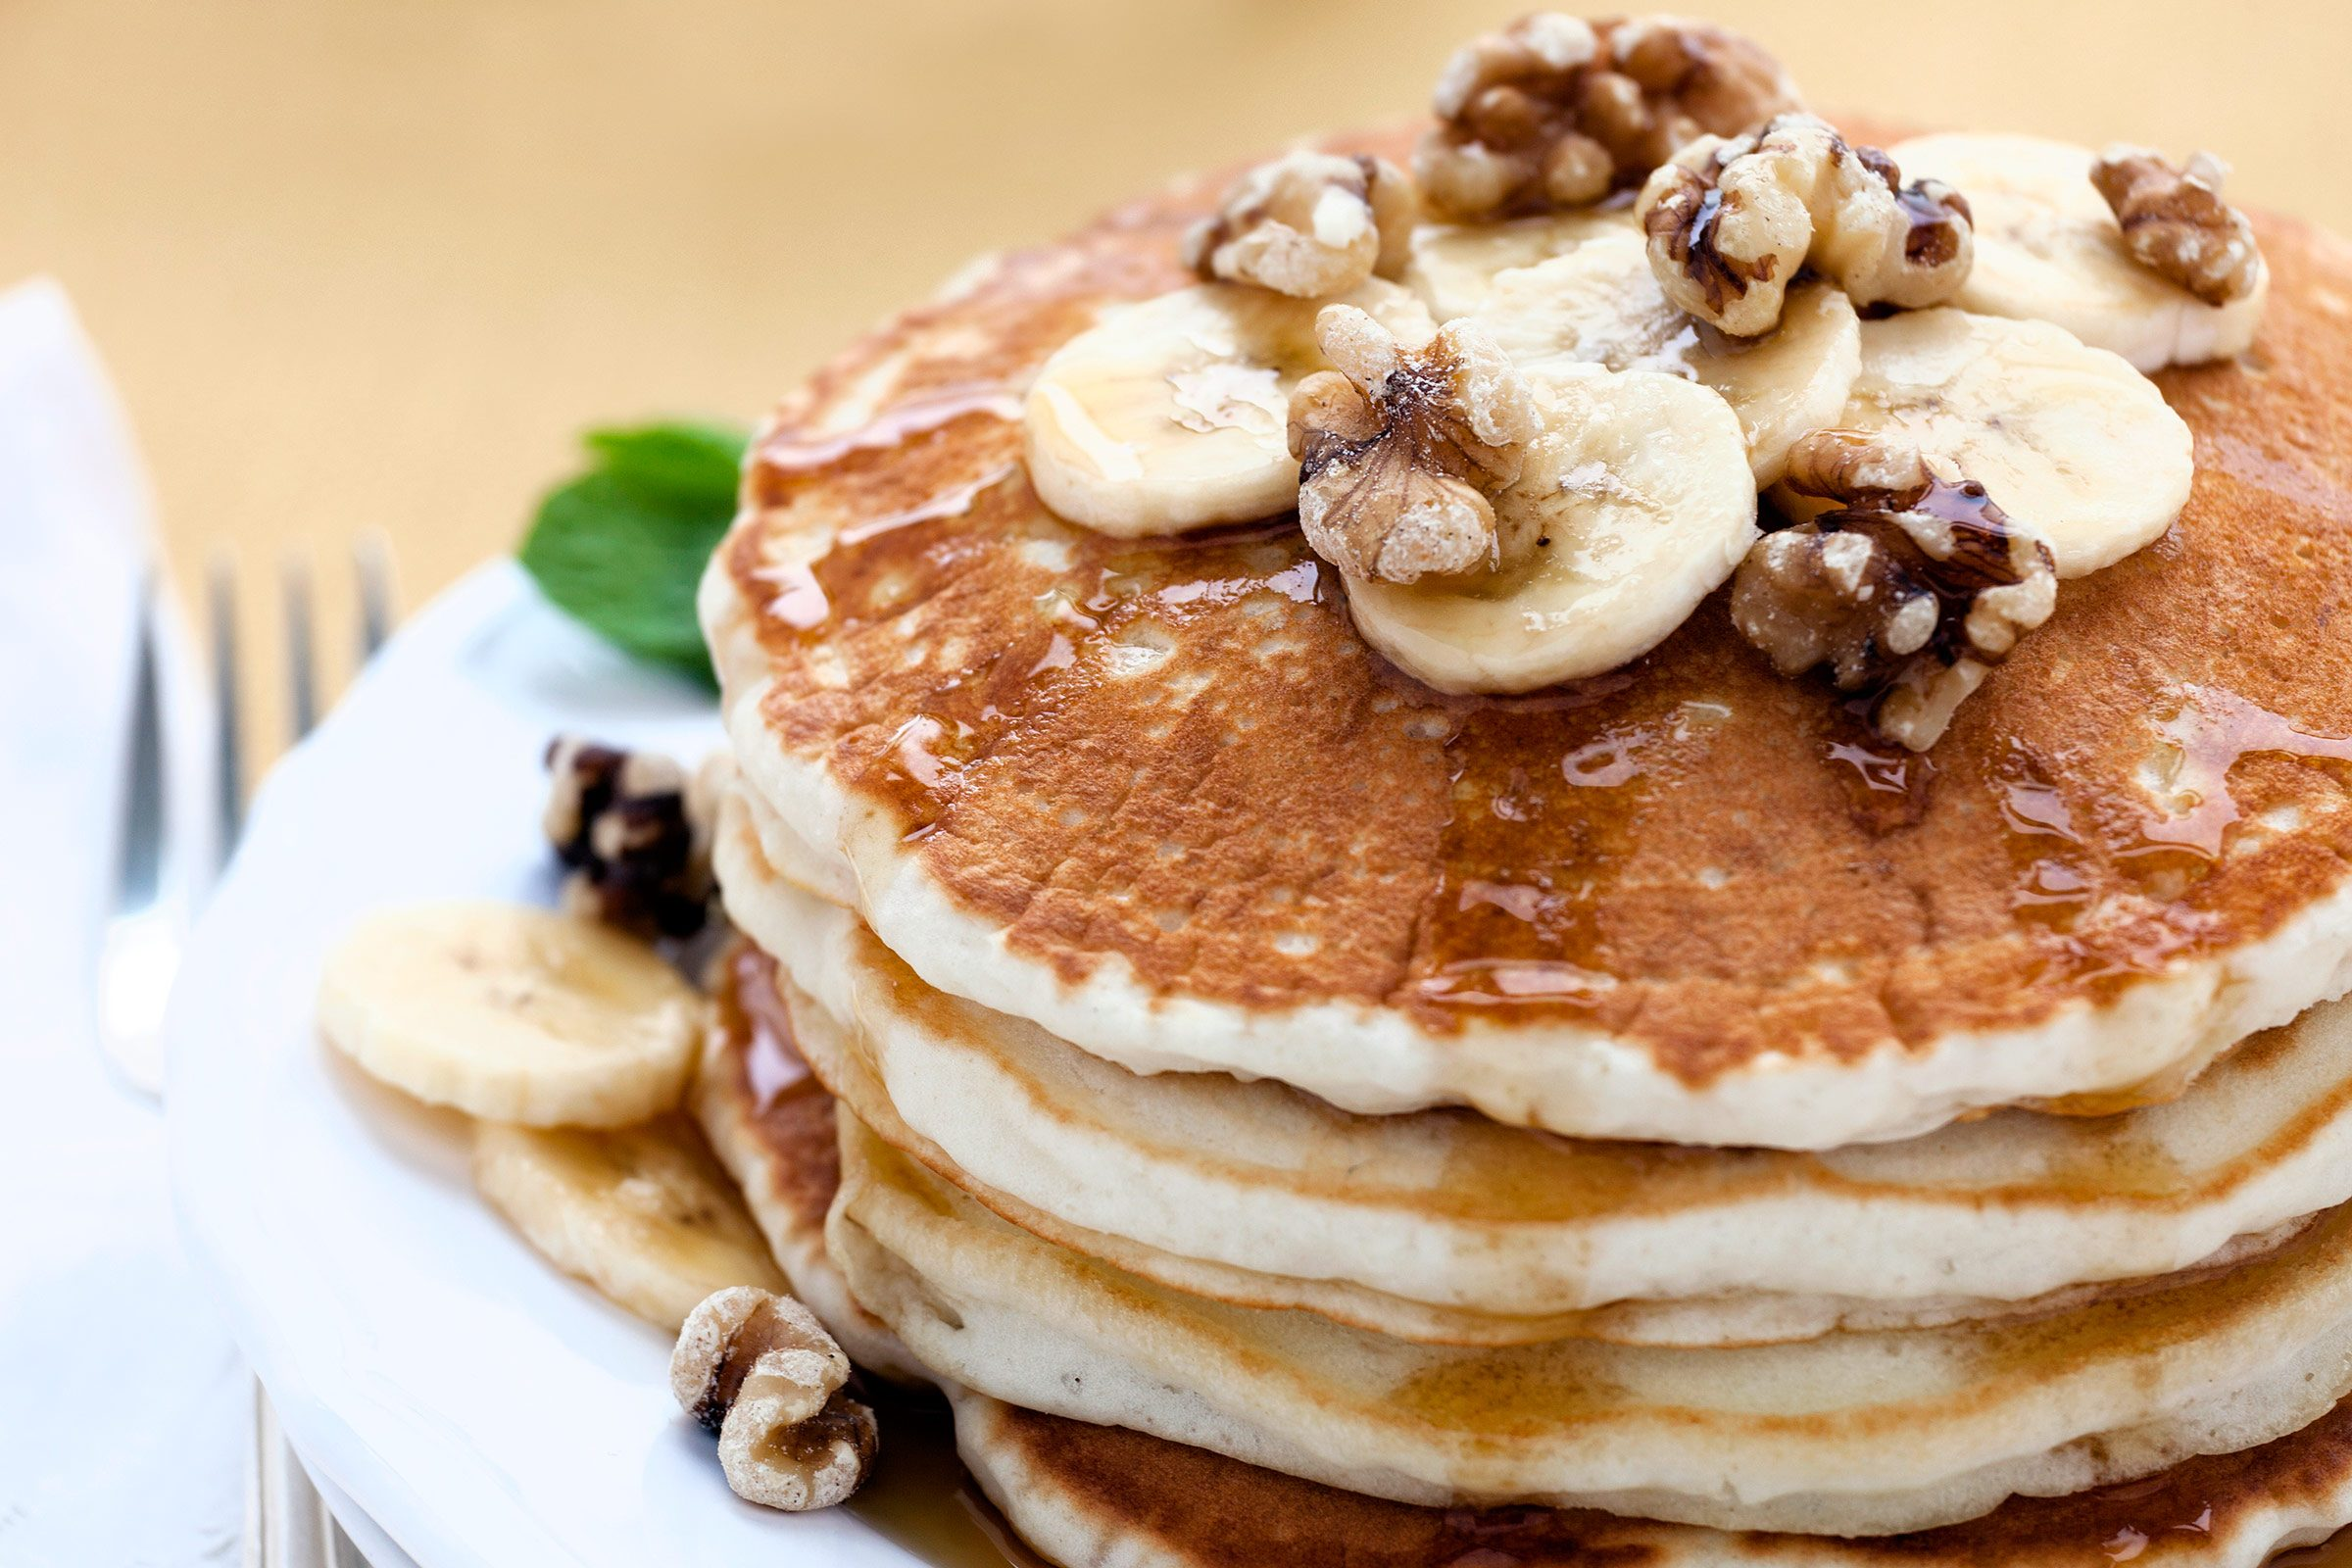 Ginger Pancakes with Banana-Walnut Topping